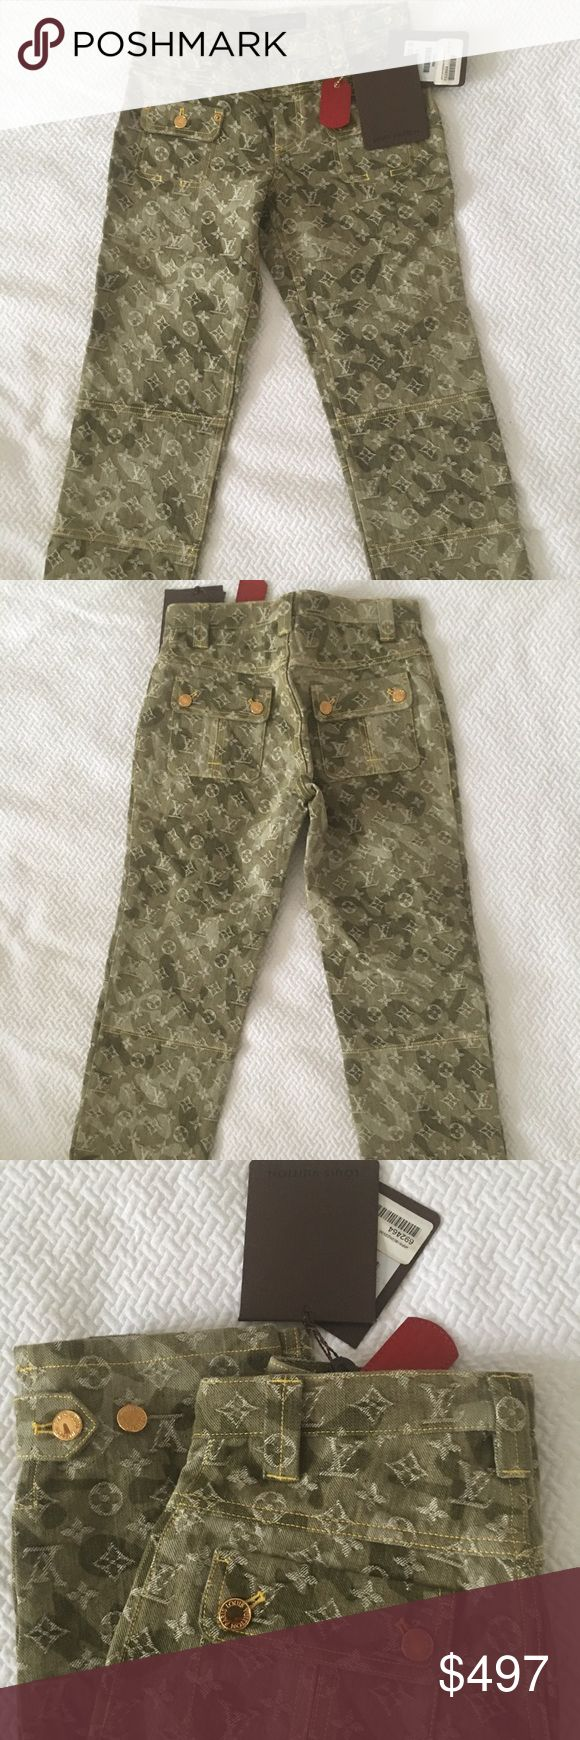 LOUIS VUITTON olive green monogram denim capri—NWT BRAND NEW—LOUIS VUITTON monogram Capri in olive green denim. Never worn, with tags! AMAZING DEAL—and amazing for summer. 😉 💯 authentic and in 💎 NEW condition. They are a Euro size 36 so fit a US size 2. Louis Vuitton Jeans Ankle & Cropped